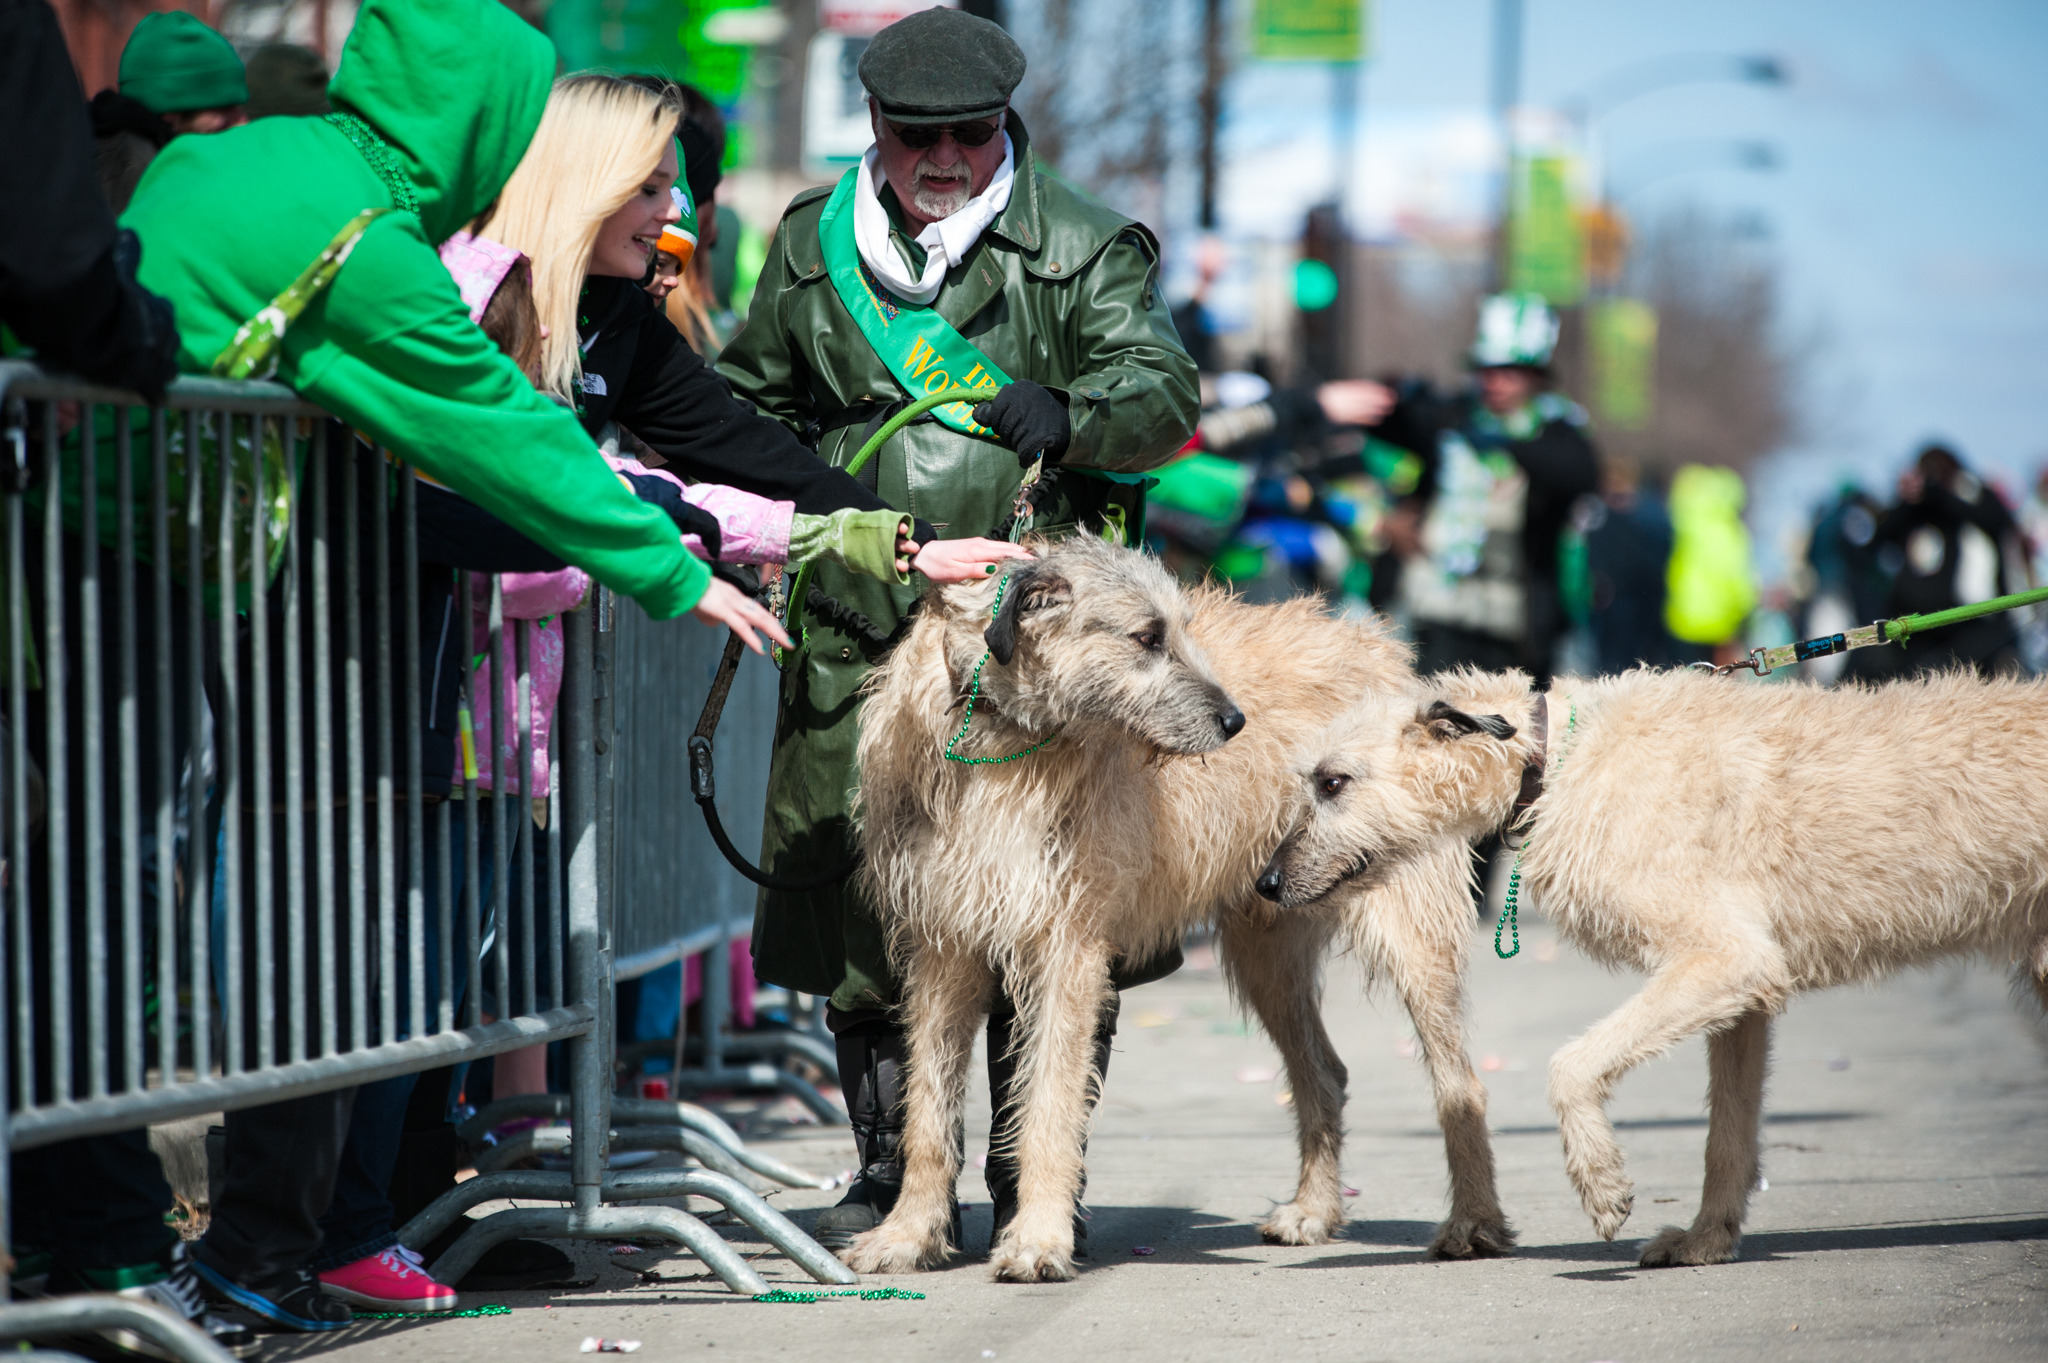 Celebrate St. Patrick's Day the Chicago way